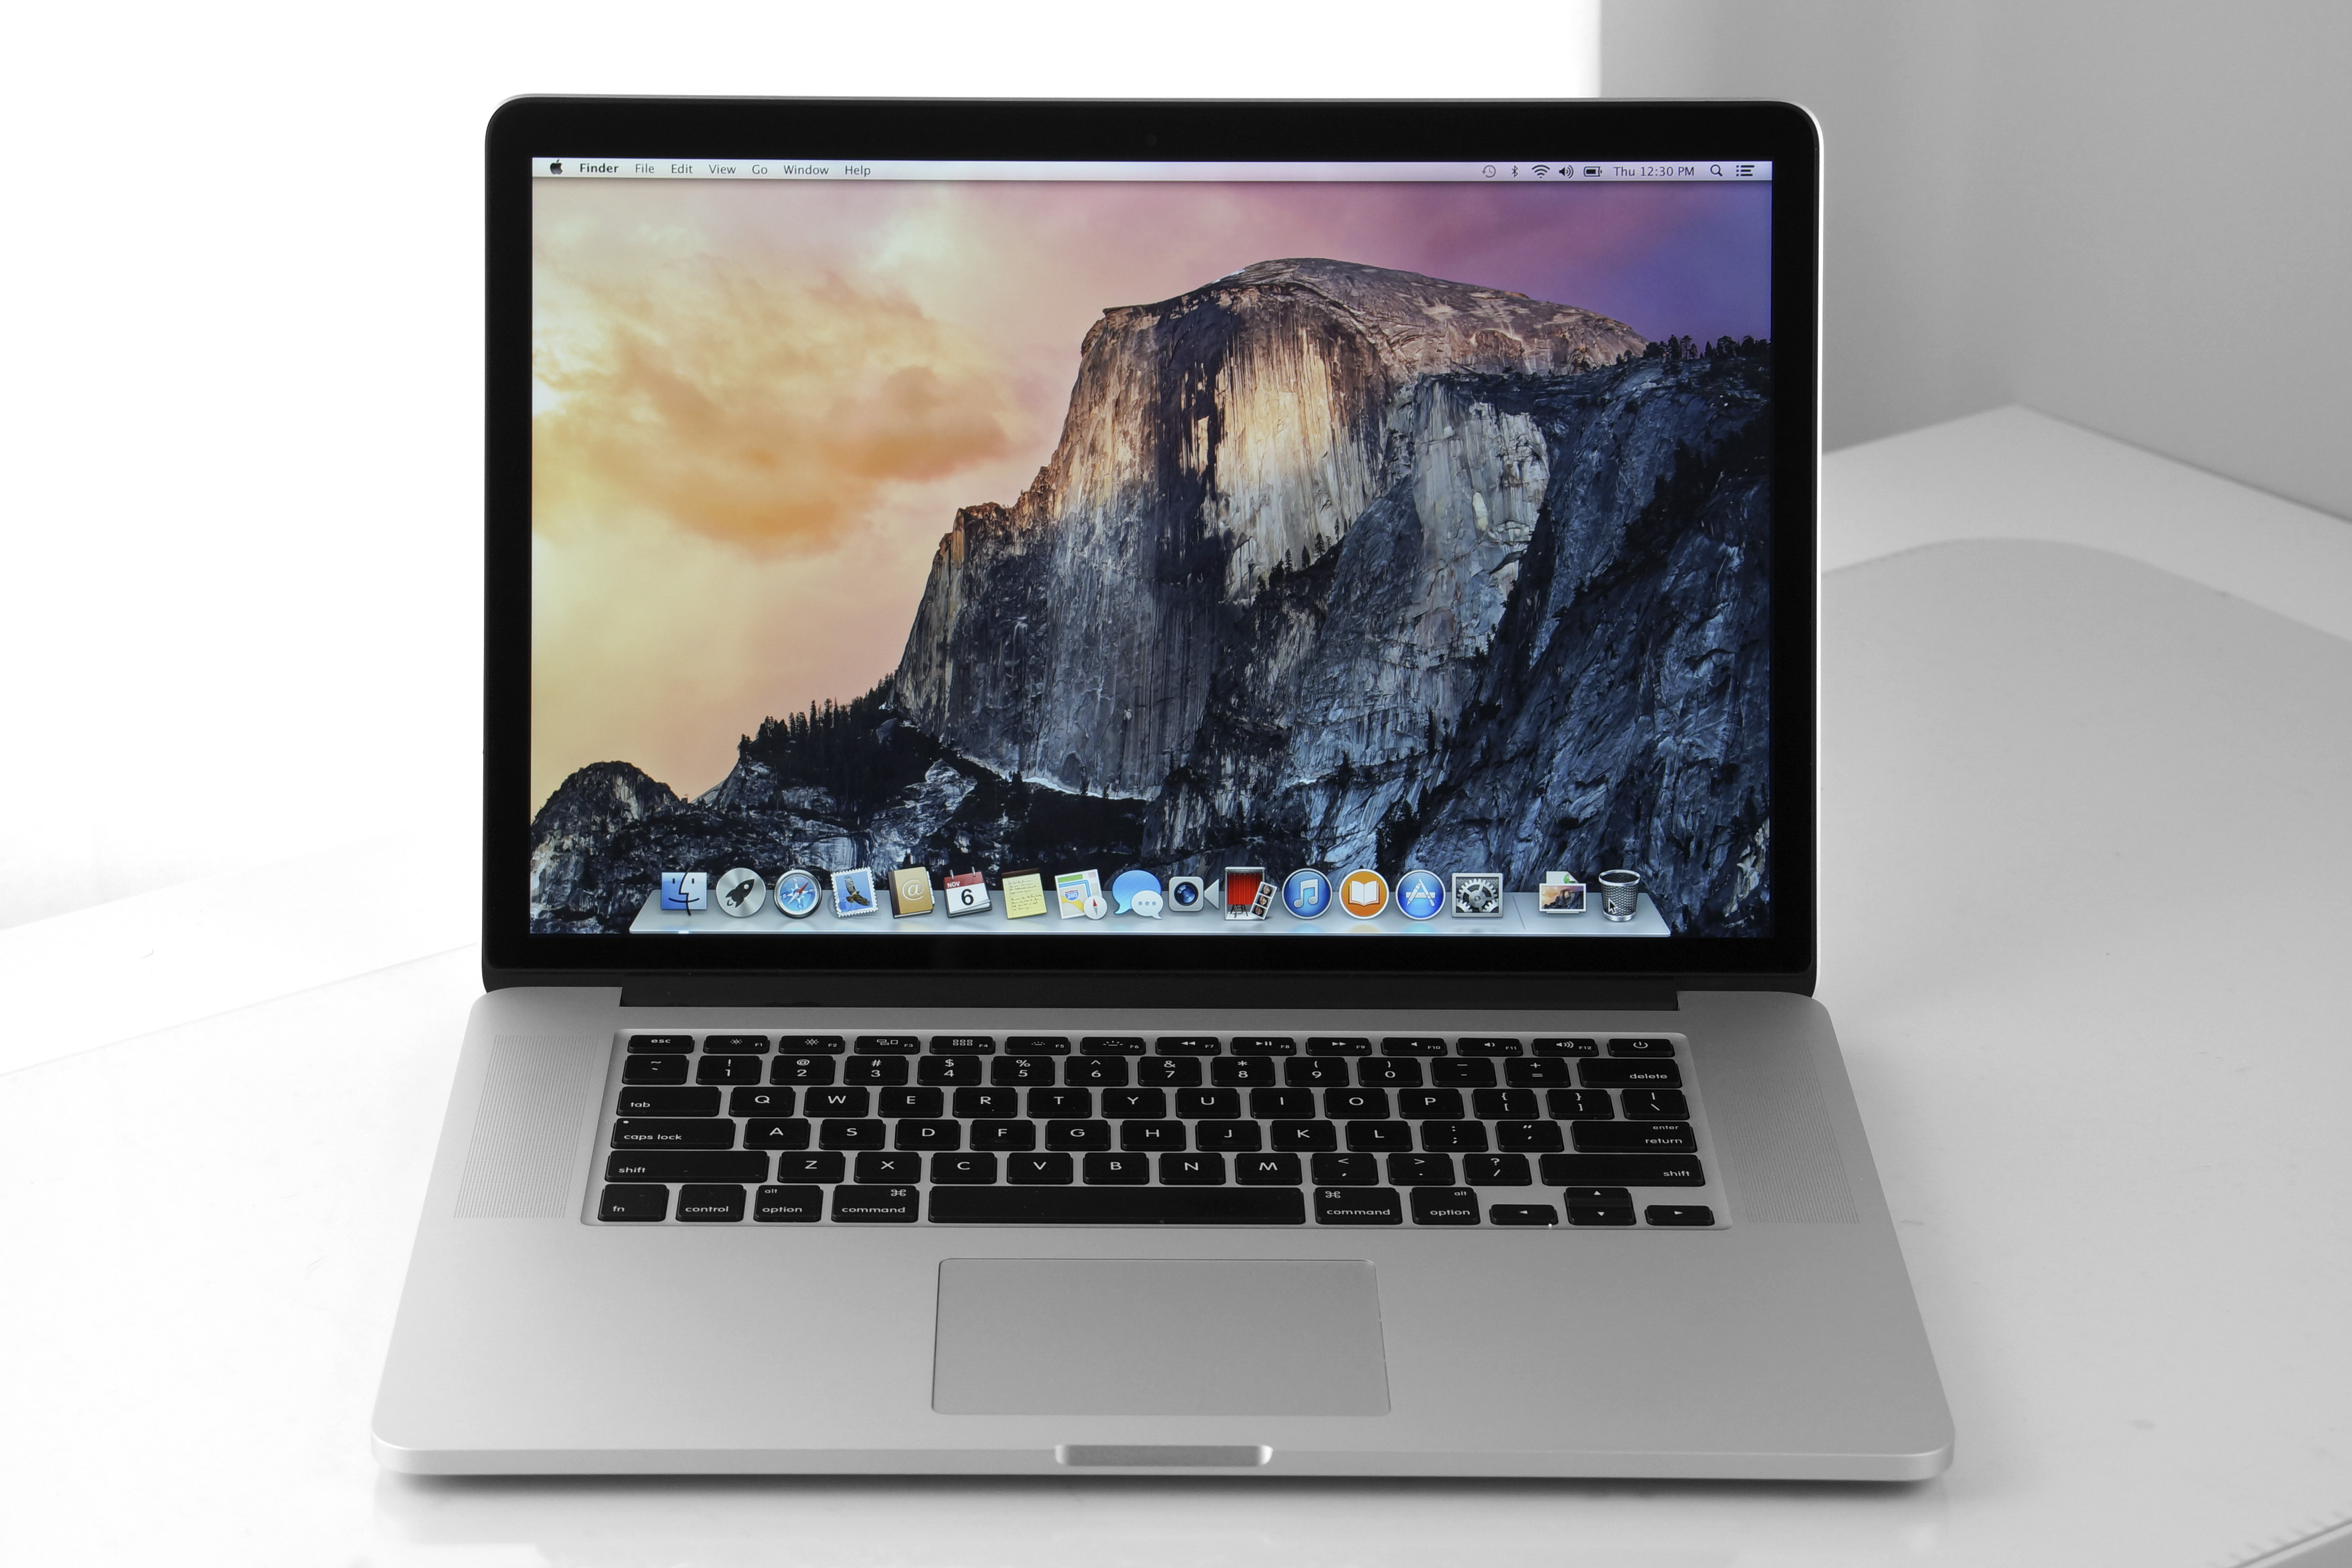 "Apple Macbook Pro A1398 - Core i7 4850 HQ 2.3Ghz, 16GB RAM, 256GB SSD HDD, 15"" Screen - Refurbished"